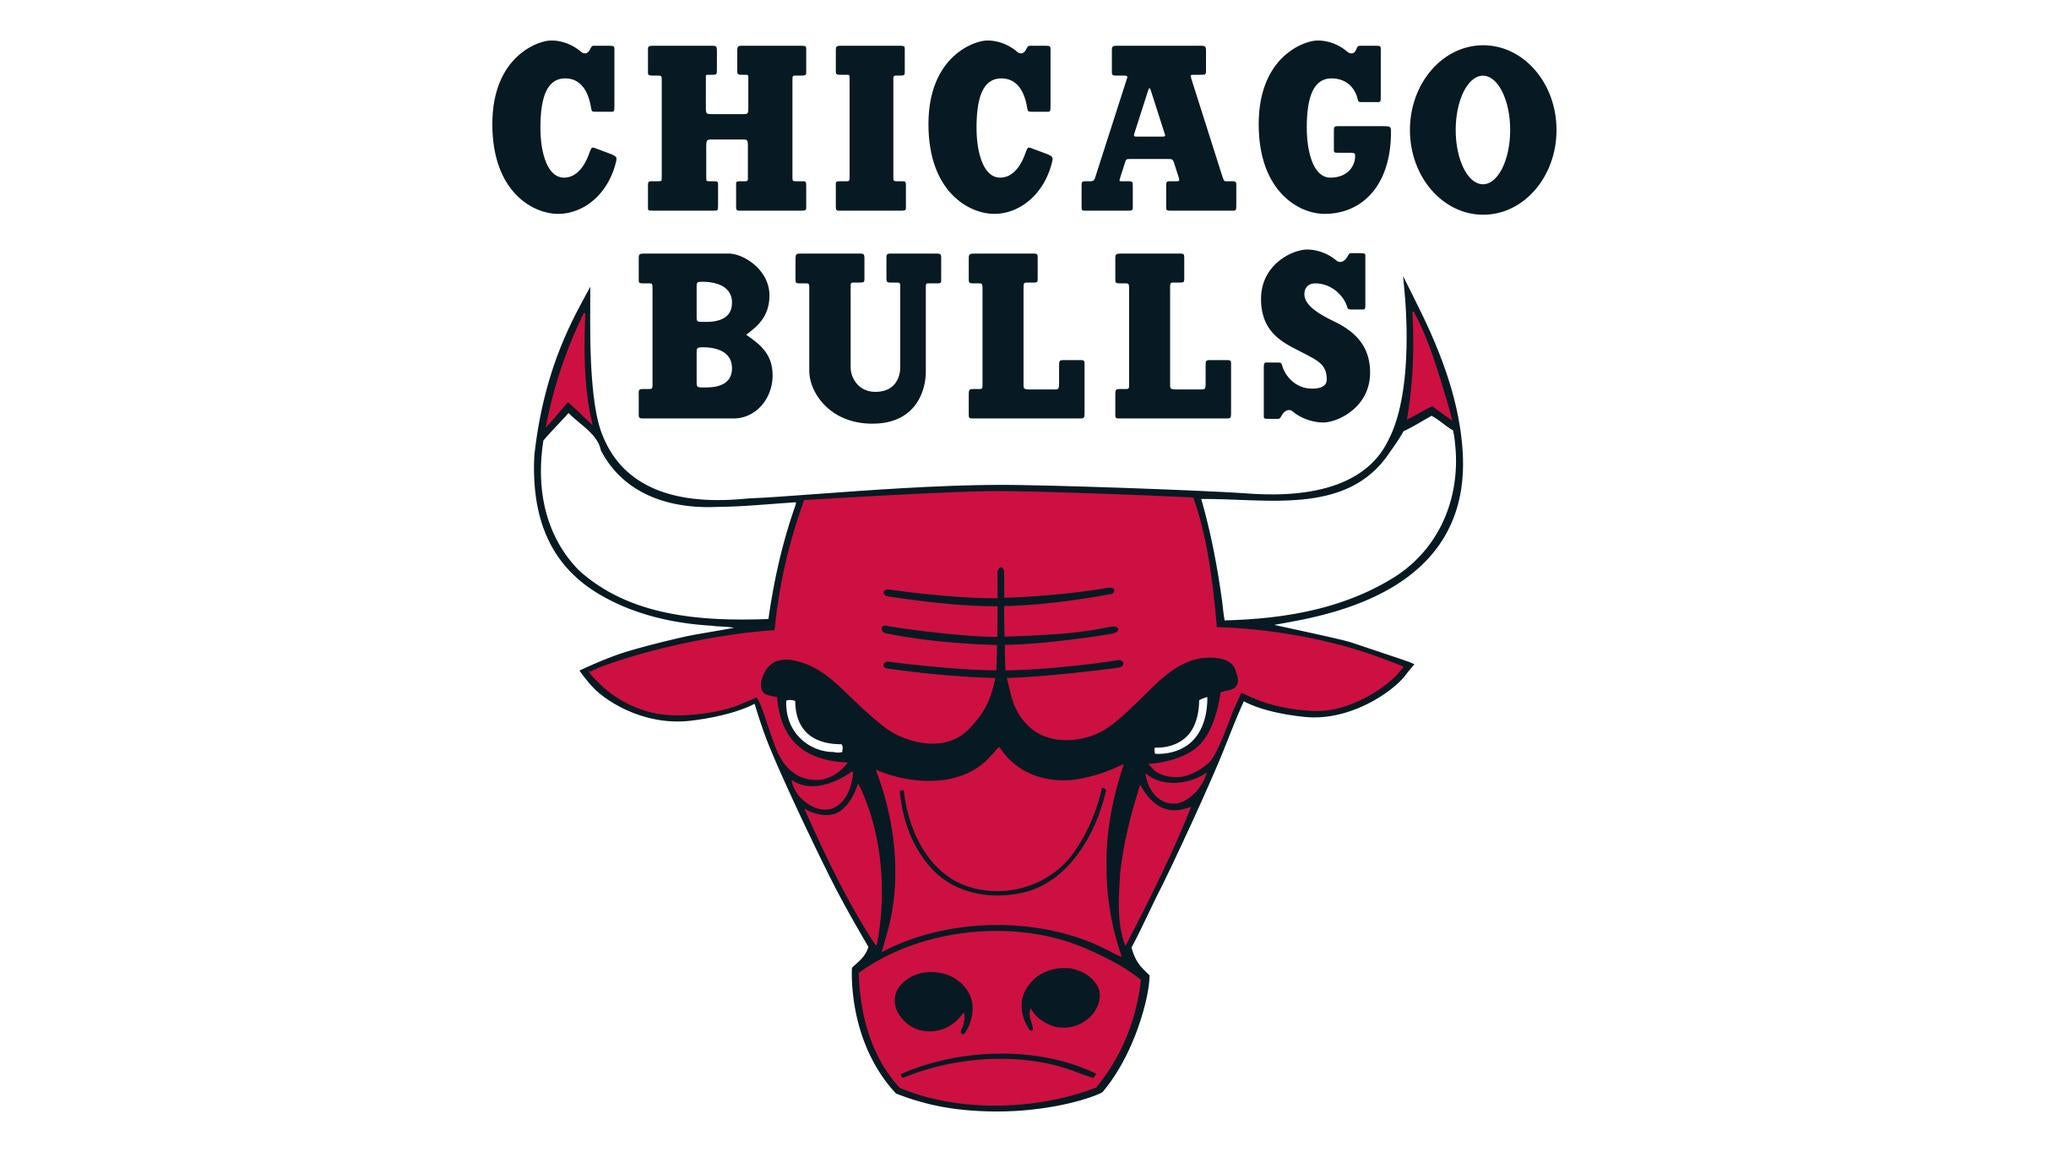 Chicago Bulls vs. Charlotte Hornets at United Center